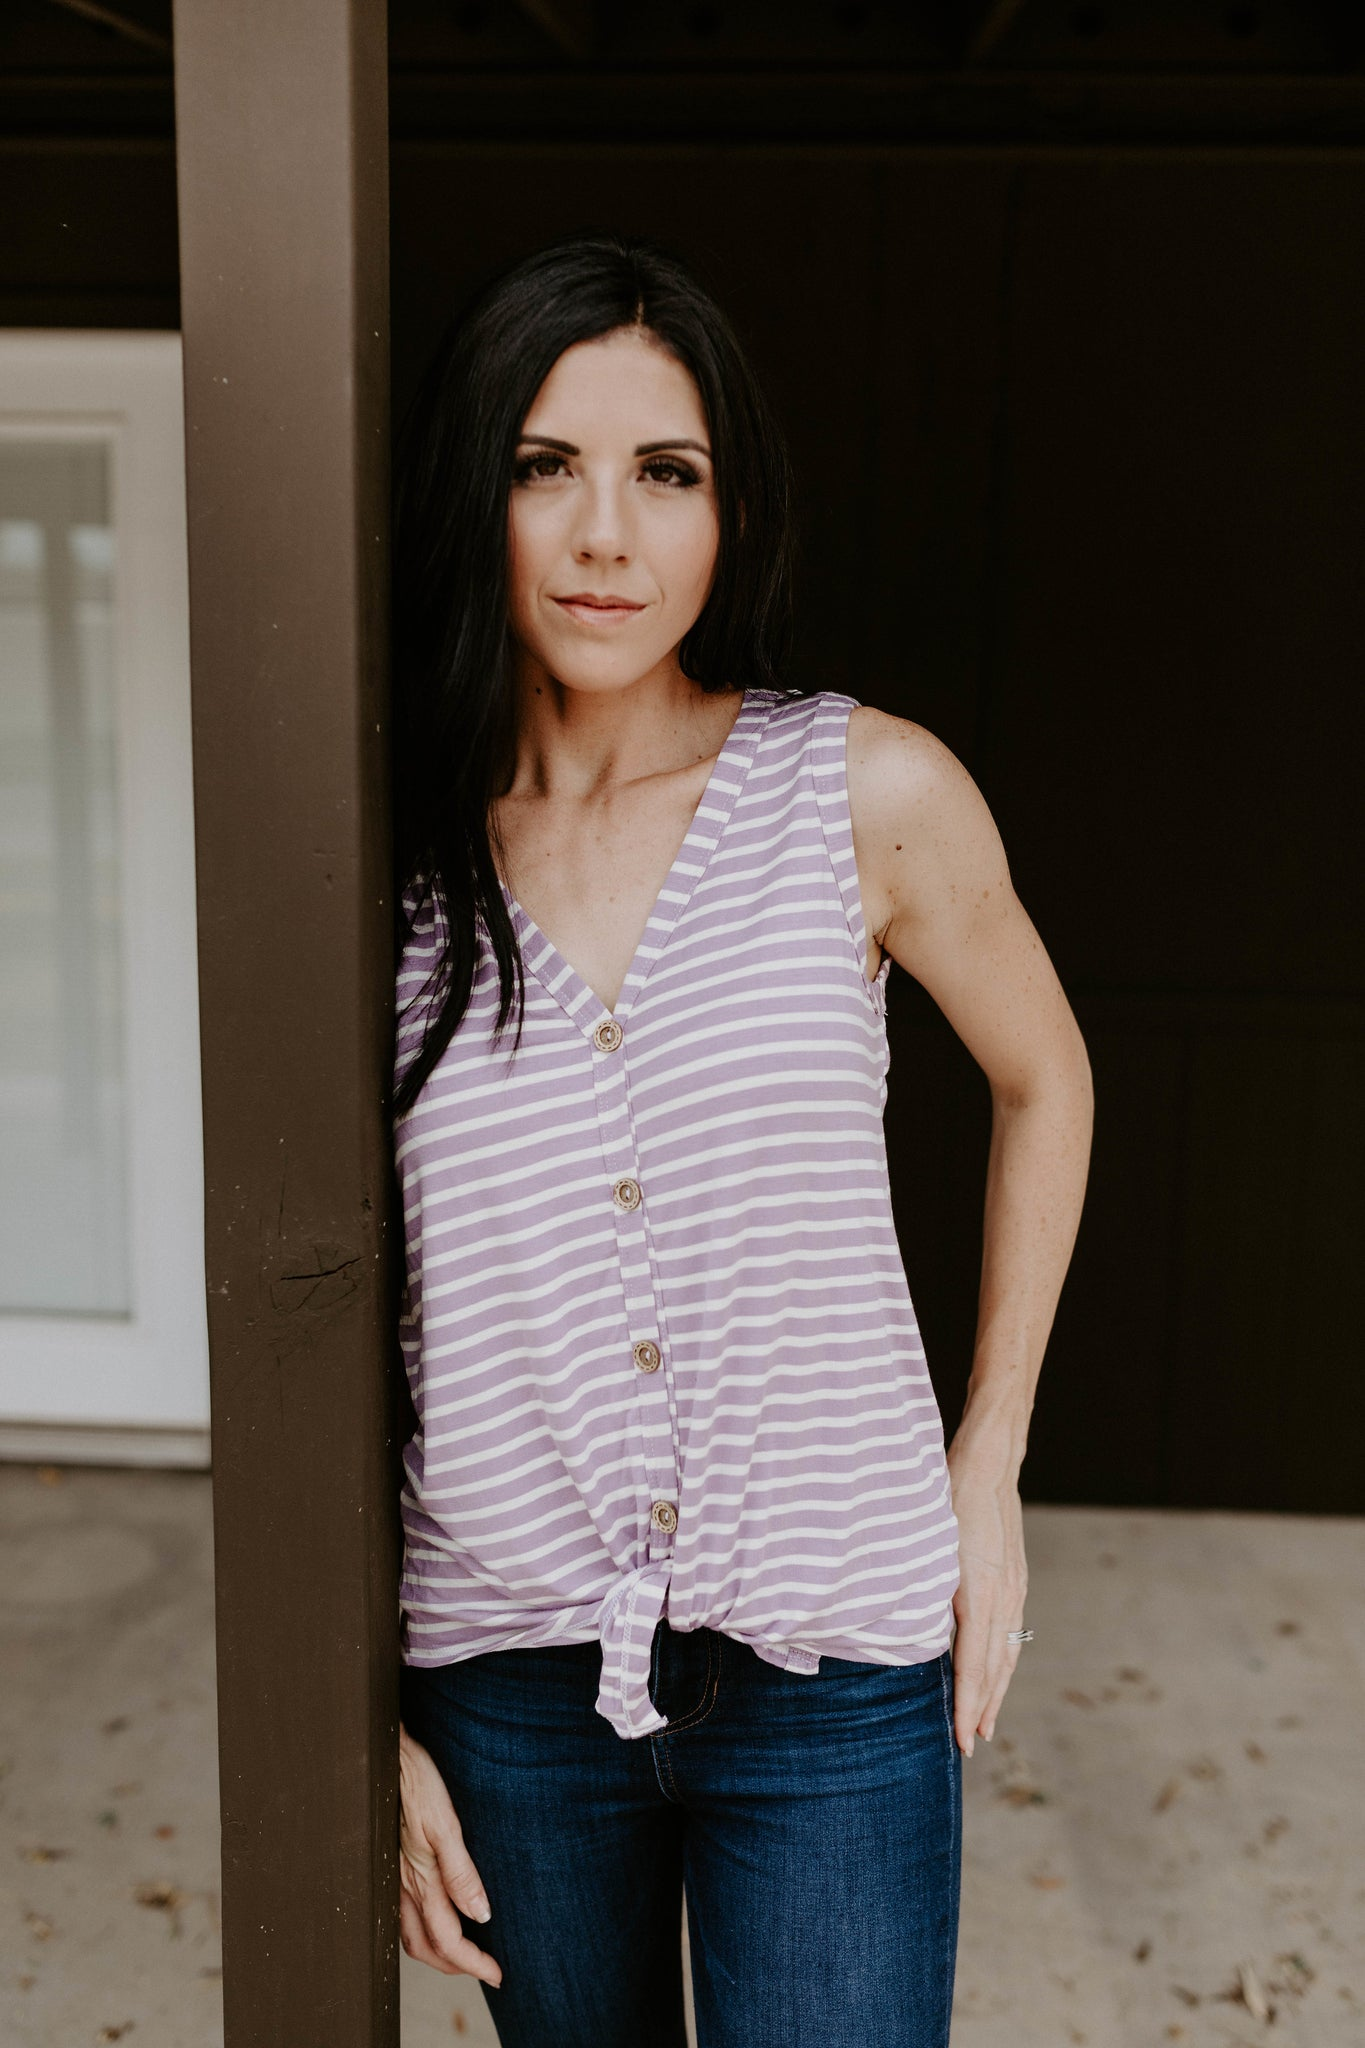 The Darla Button Up Tank